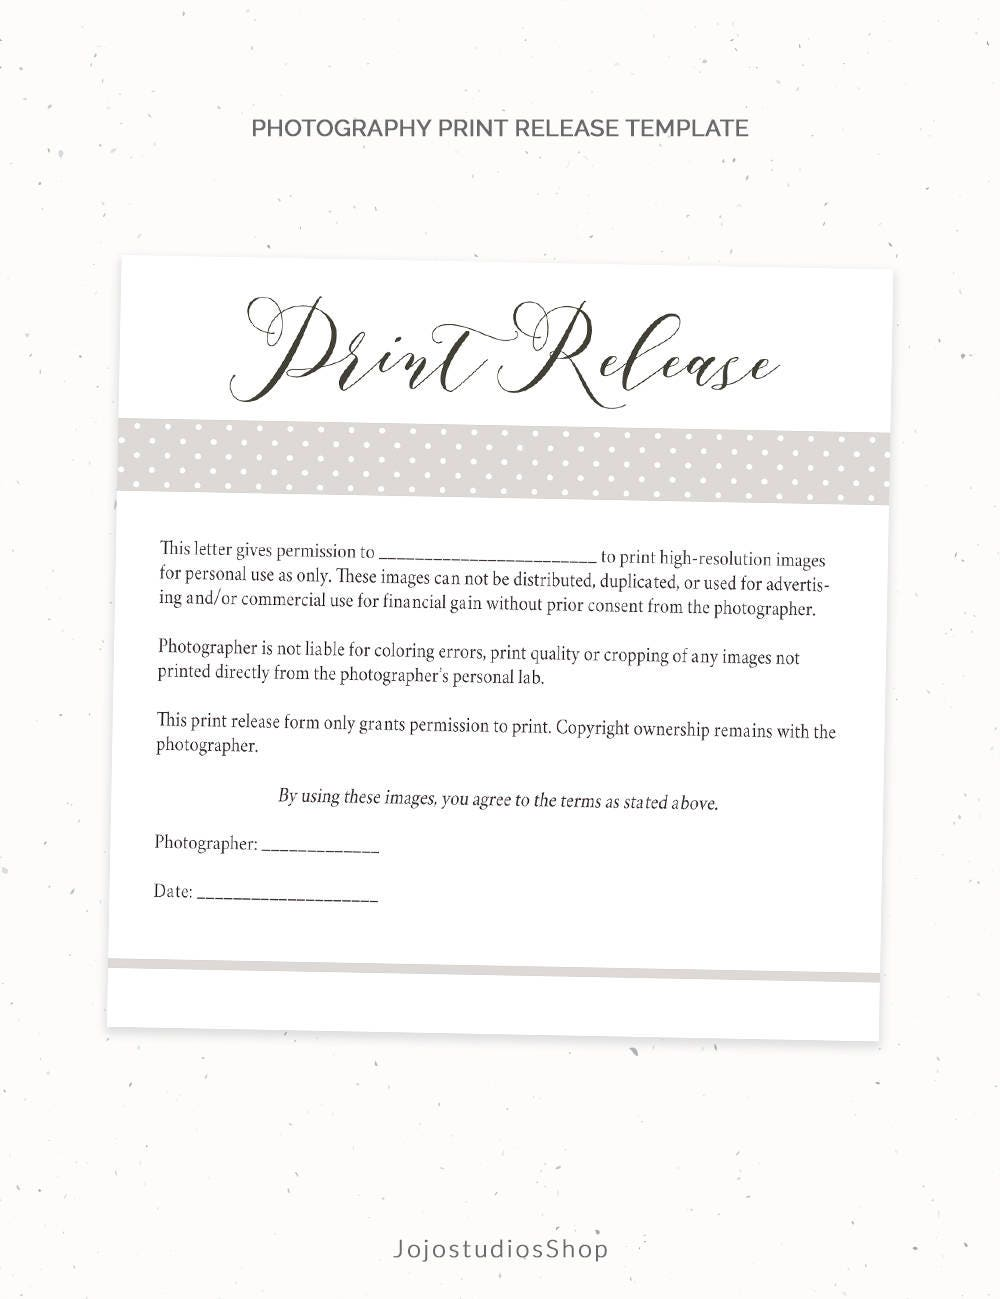 photographer copyright release form template - photography print release form template photography template